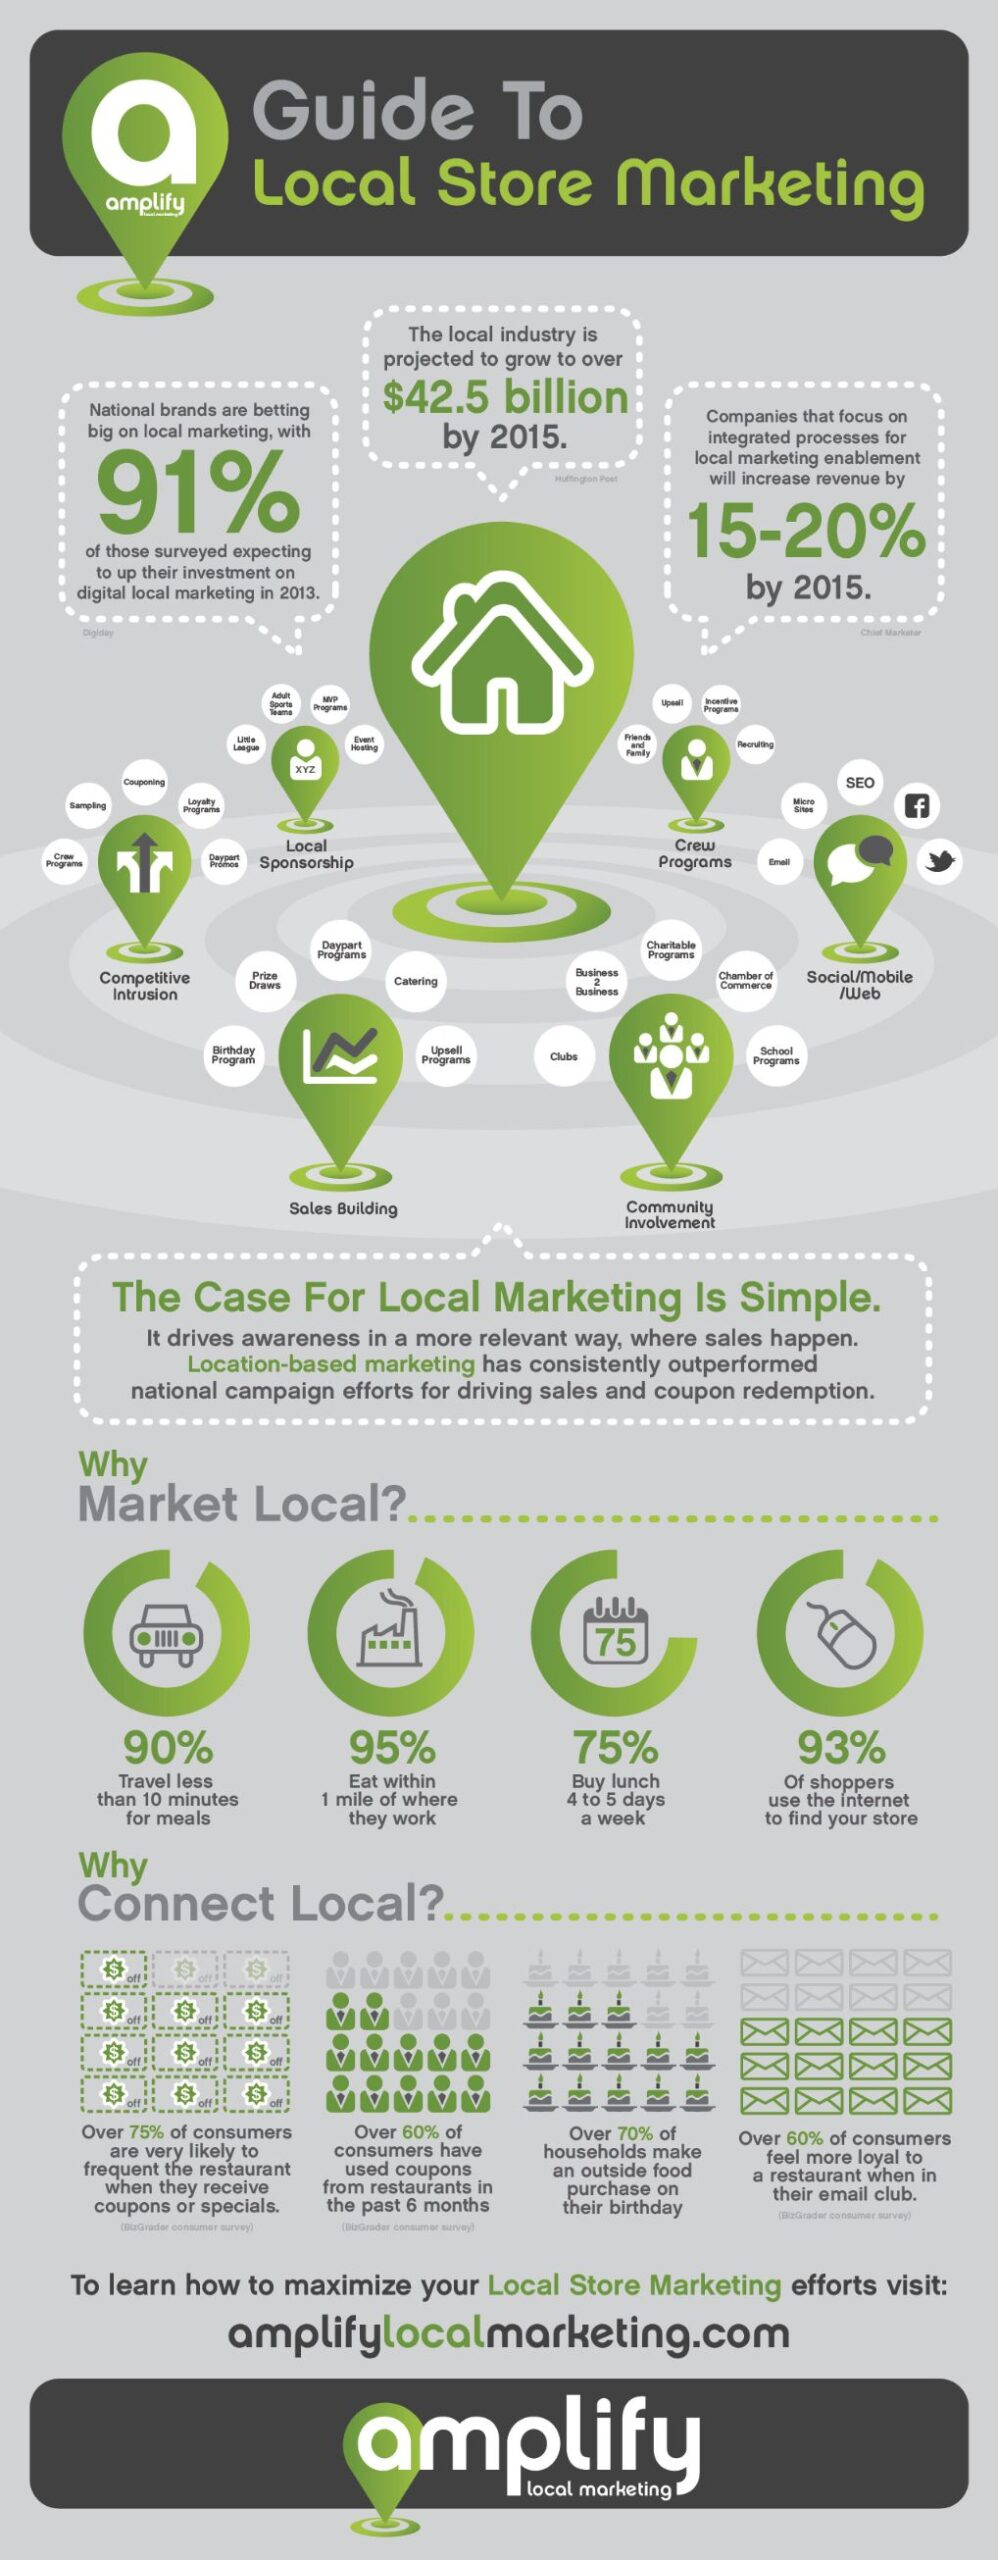 Unless your business is not area-specific, you should focus on local marketing strategy first to get the most benefit from digital marketing.